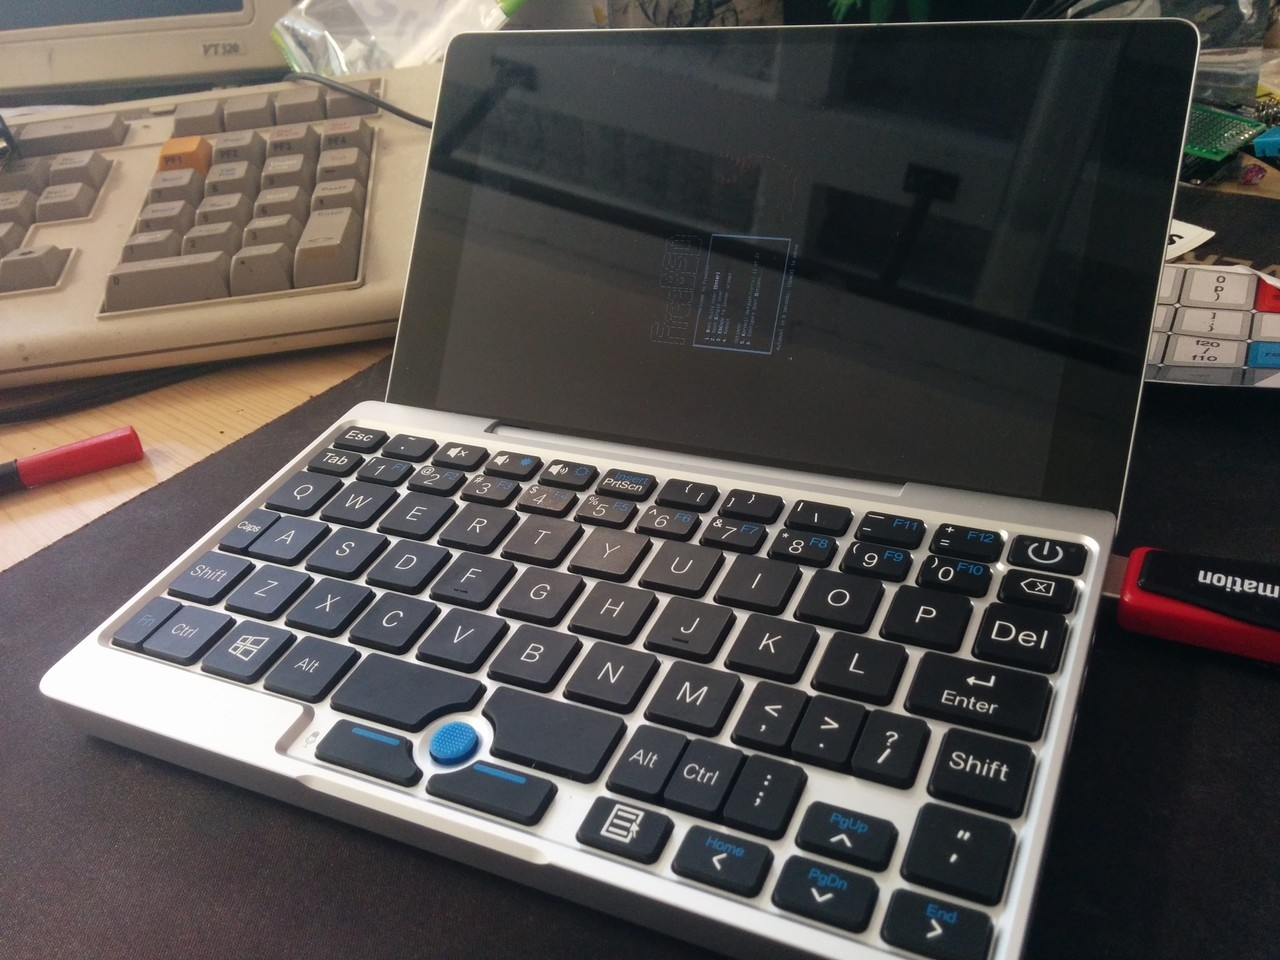 GPD Pocket FreeBSD bootsplash